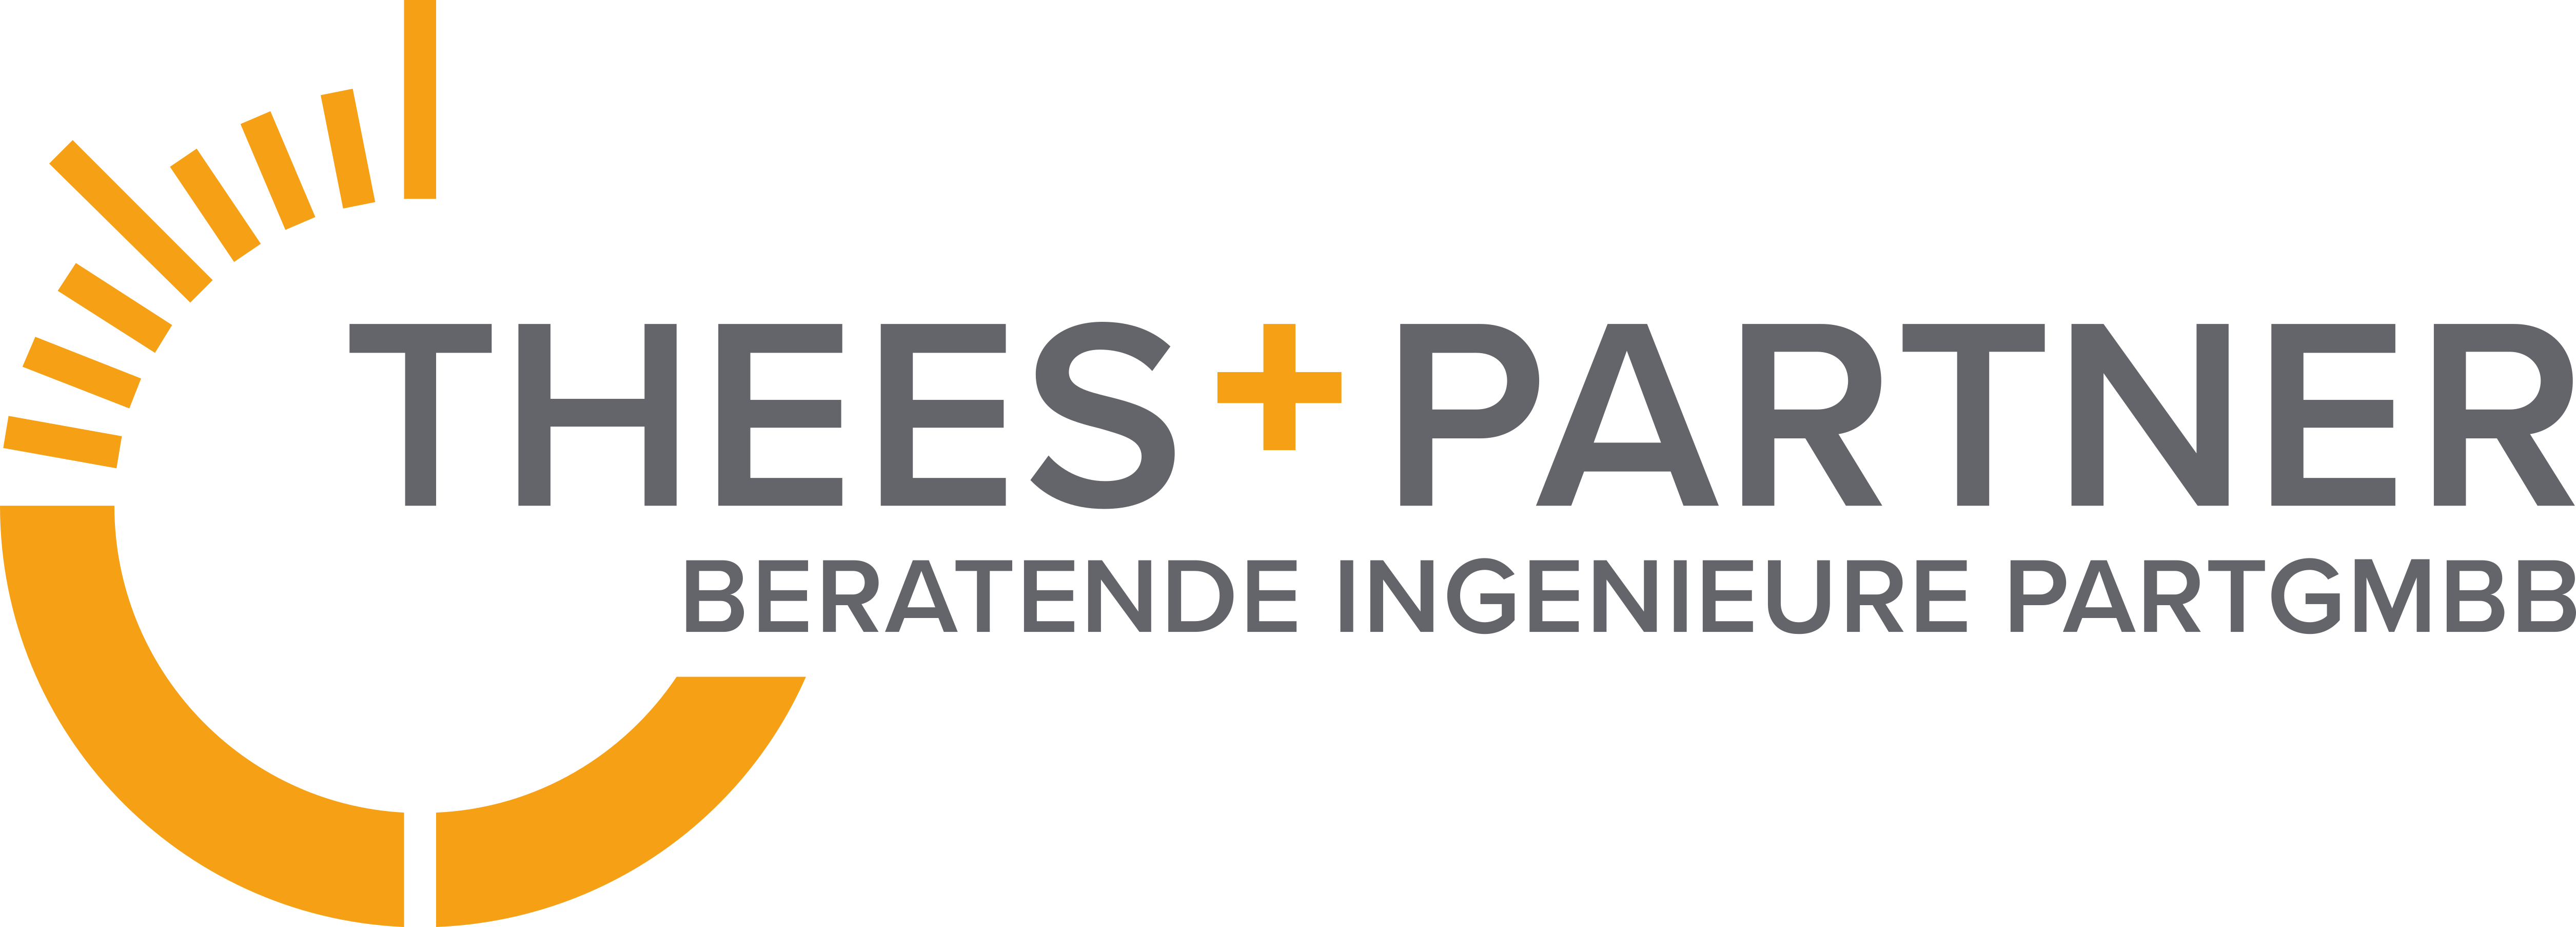 THEES+PARTNER